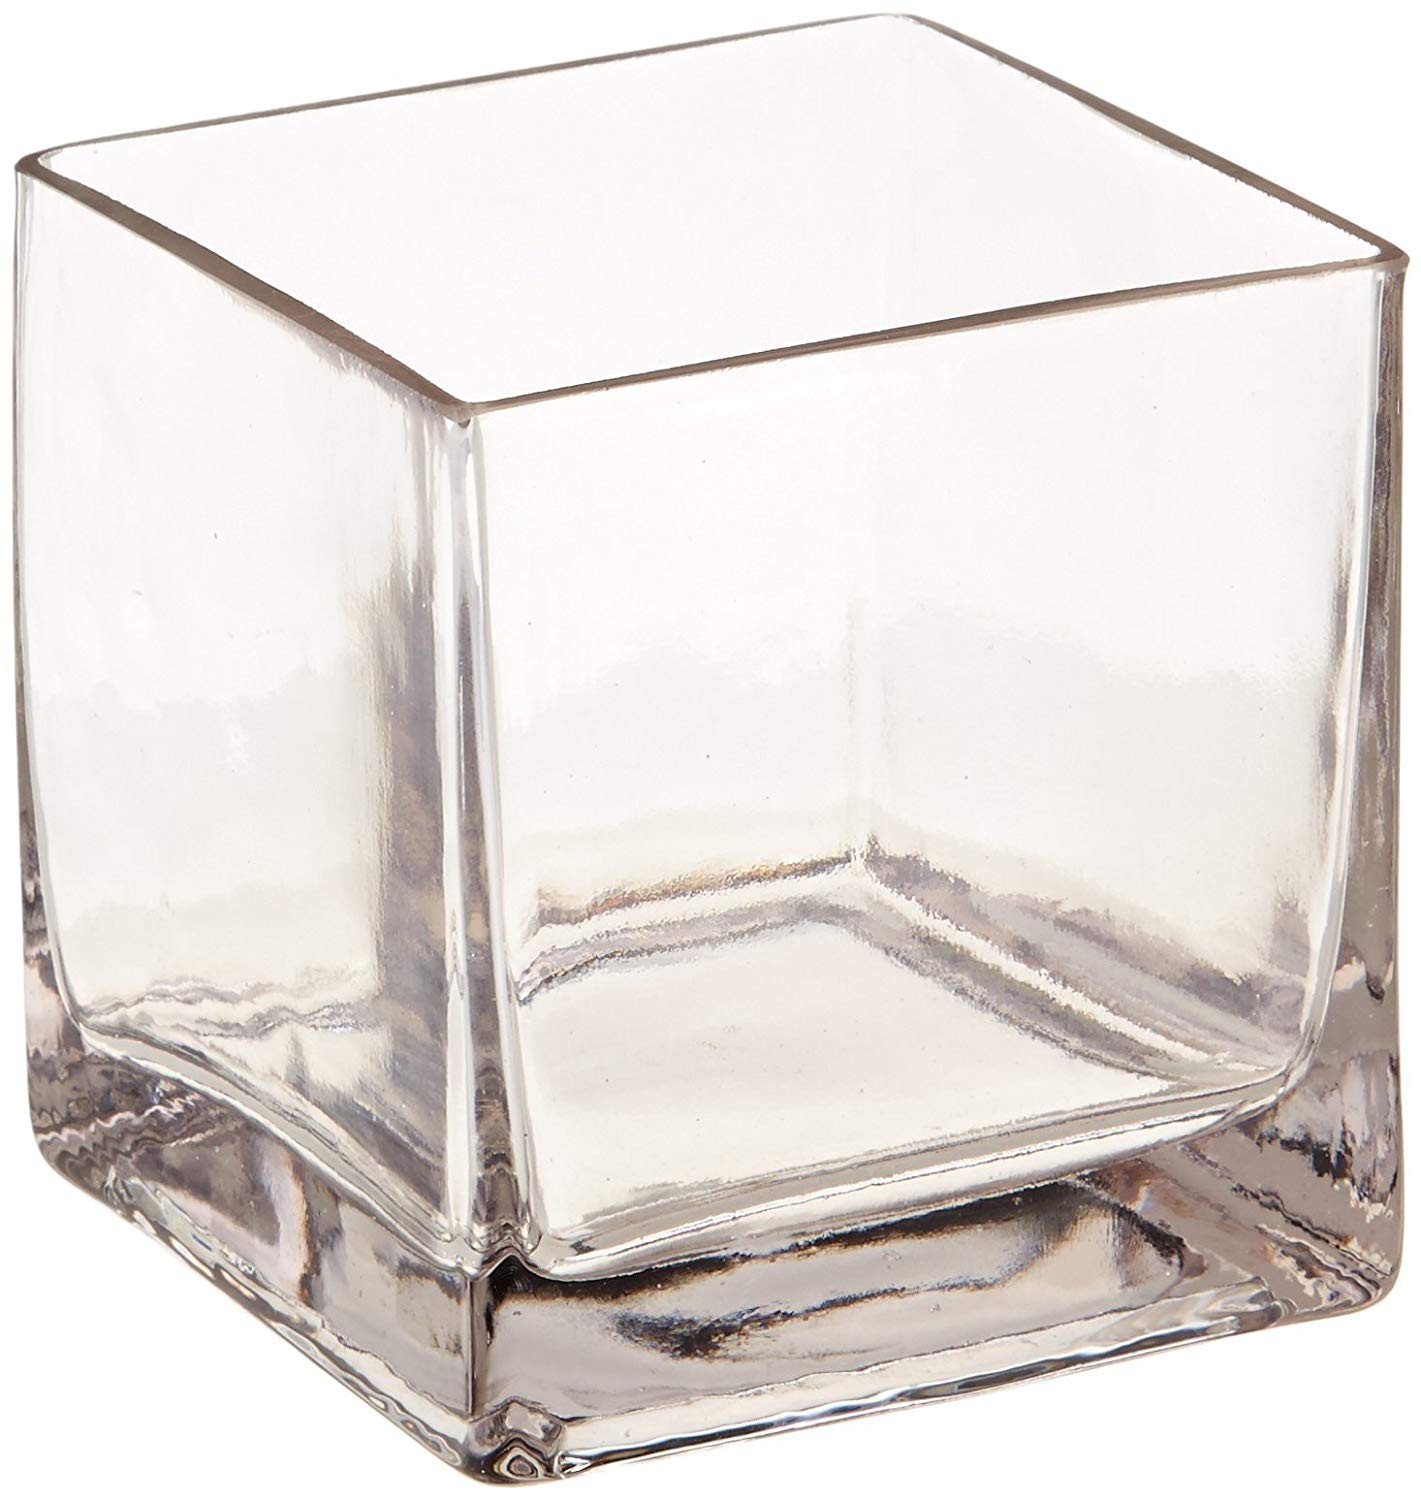 Clear Gem Vase Fillers Of Buy Cys Excel 12pc Clear Square Glass Vase Cube 5 Inch 5 X 5 X 5 Regarding Buy Cys Excel 12pc Clear Square Glass Vase Cube 5 Inch 5 X 5 X 5 Twelve Vases Online at Low Prices In India Amazon In